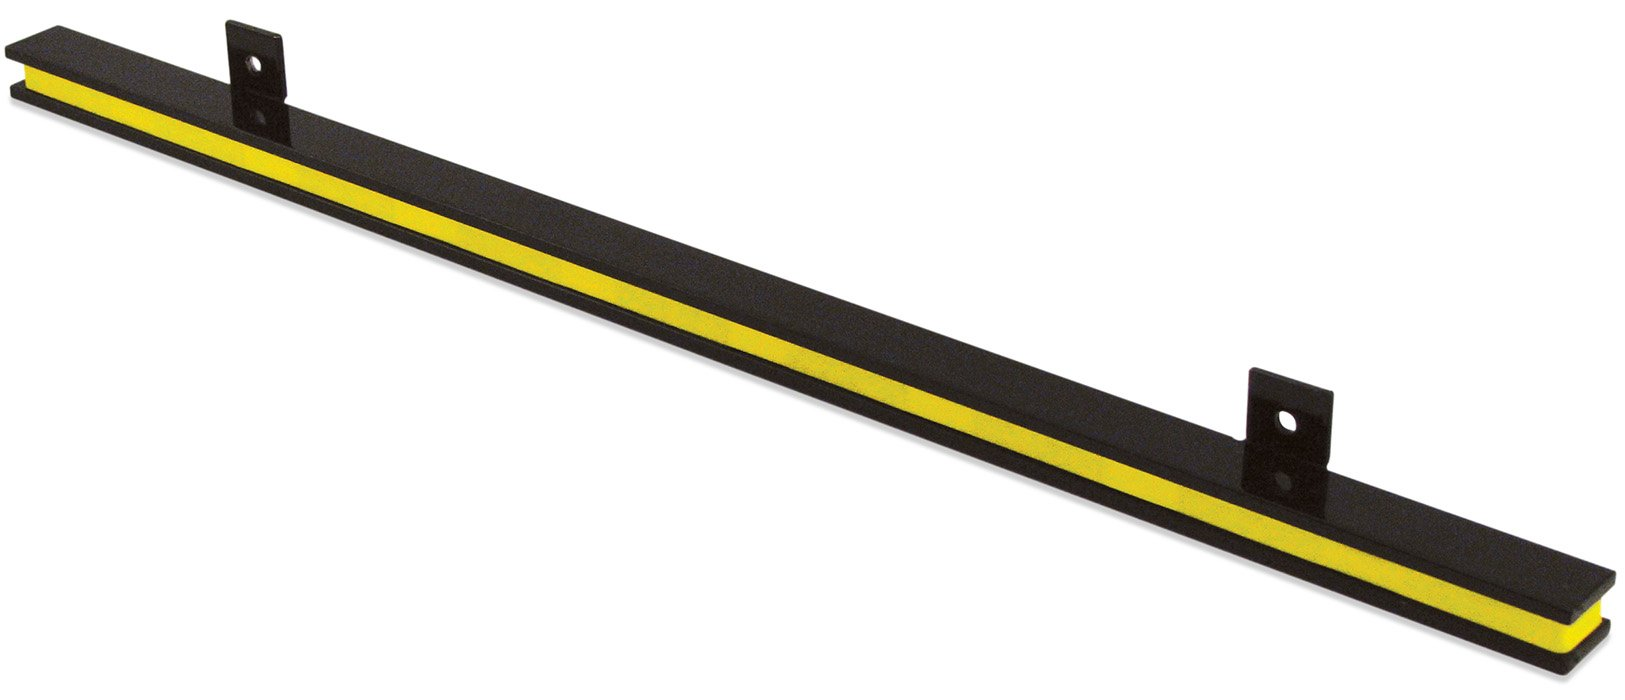 Master Magnetics AM1PLC Magnetic Tool Holder, 24'' Wide, 20 lb per inch, Black Powder Coat with Yellow Stripe